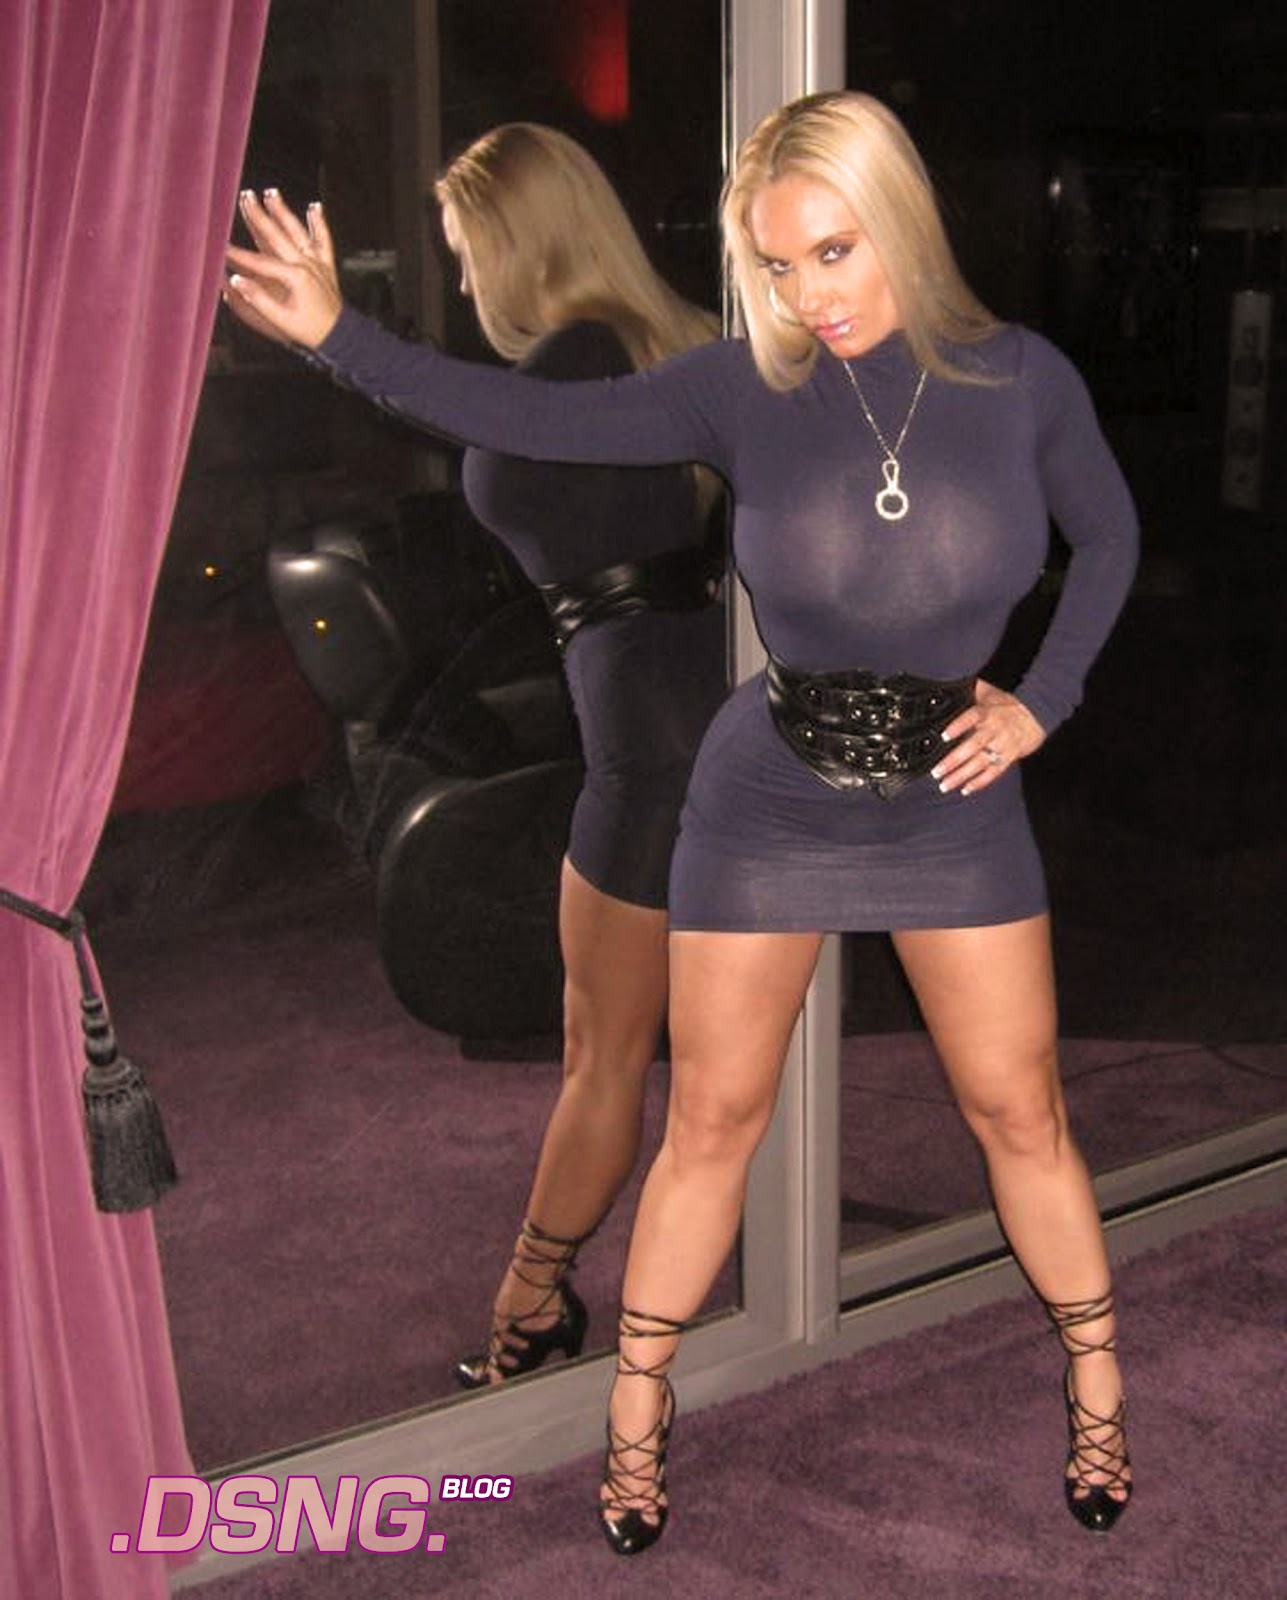 Dsngs Sci Fi Megaverse Coco Austin - Classic Photo Gallery-5055